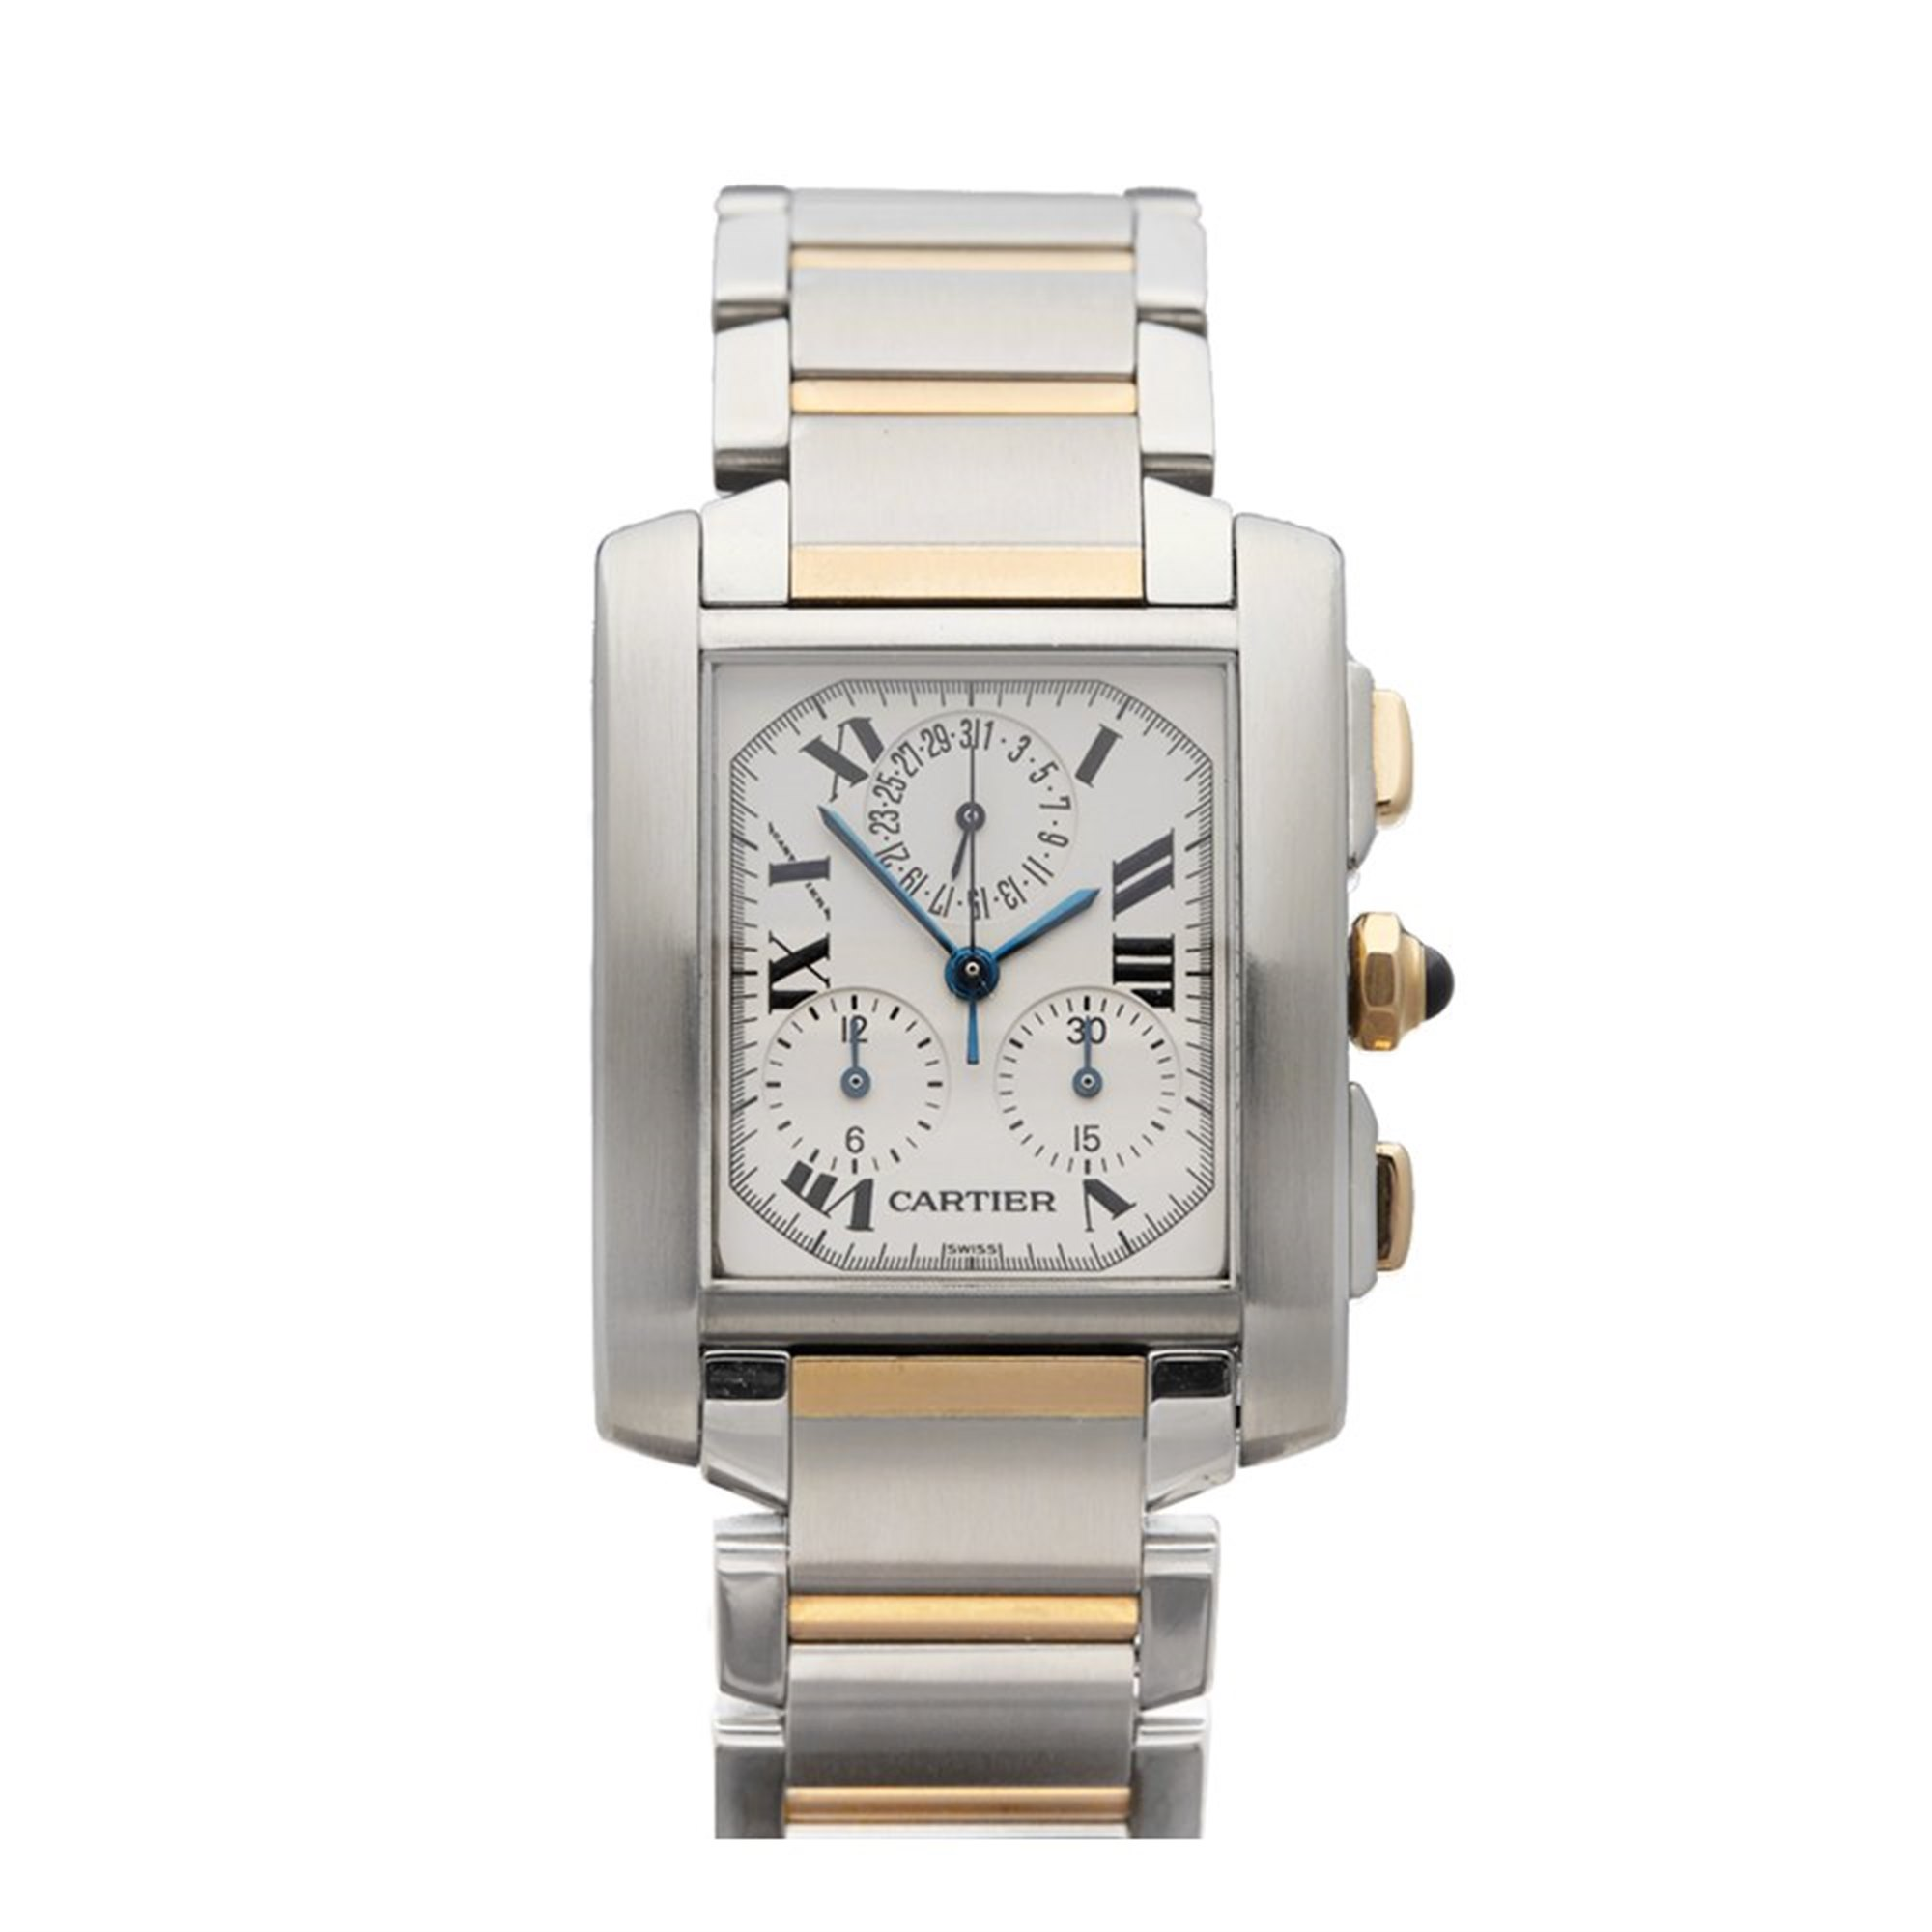 Cartier Tank Francaise Chronoreflex Stainless Steel & Yellow Gold W51004Q4 or 2303